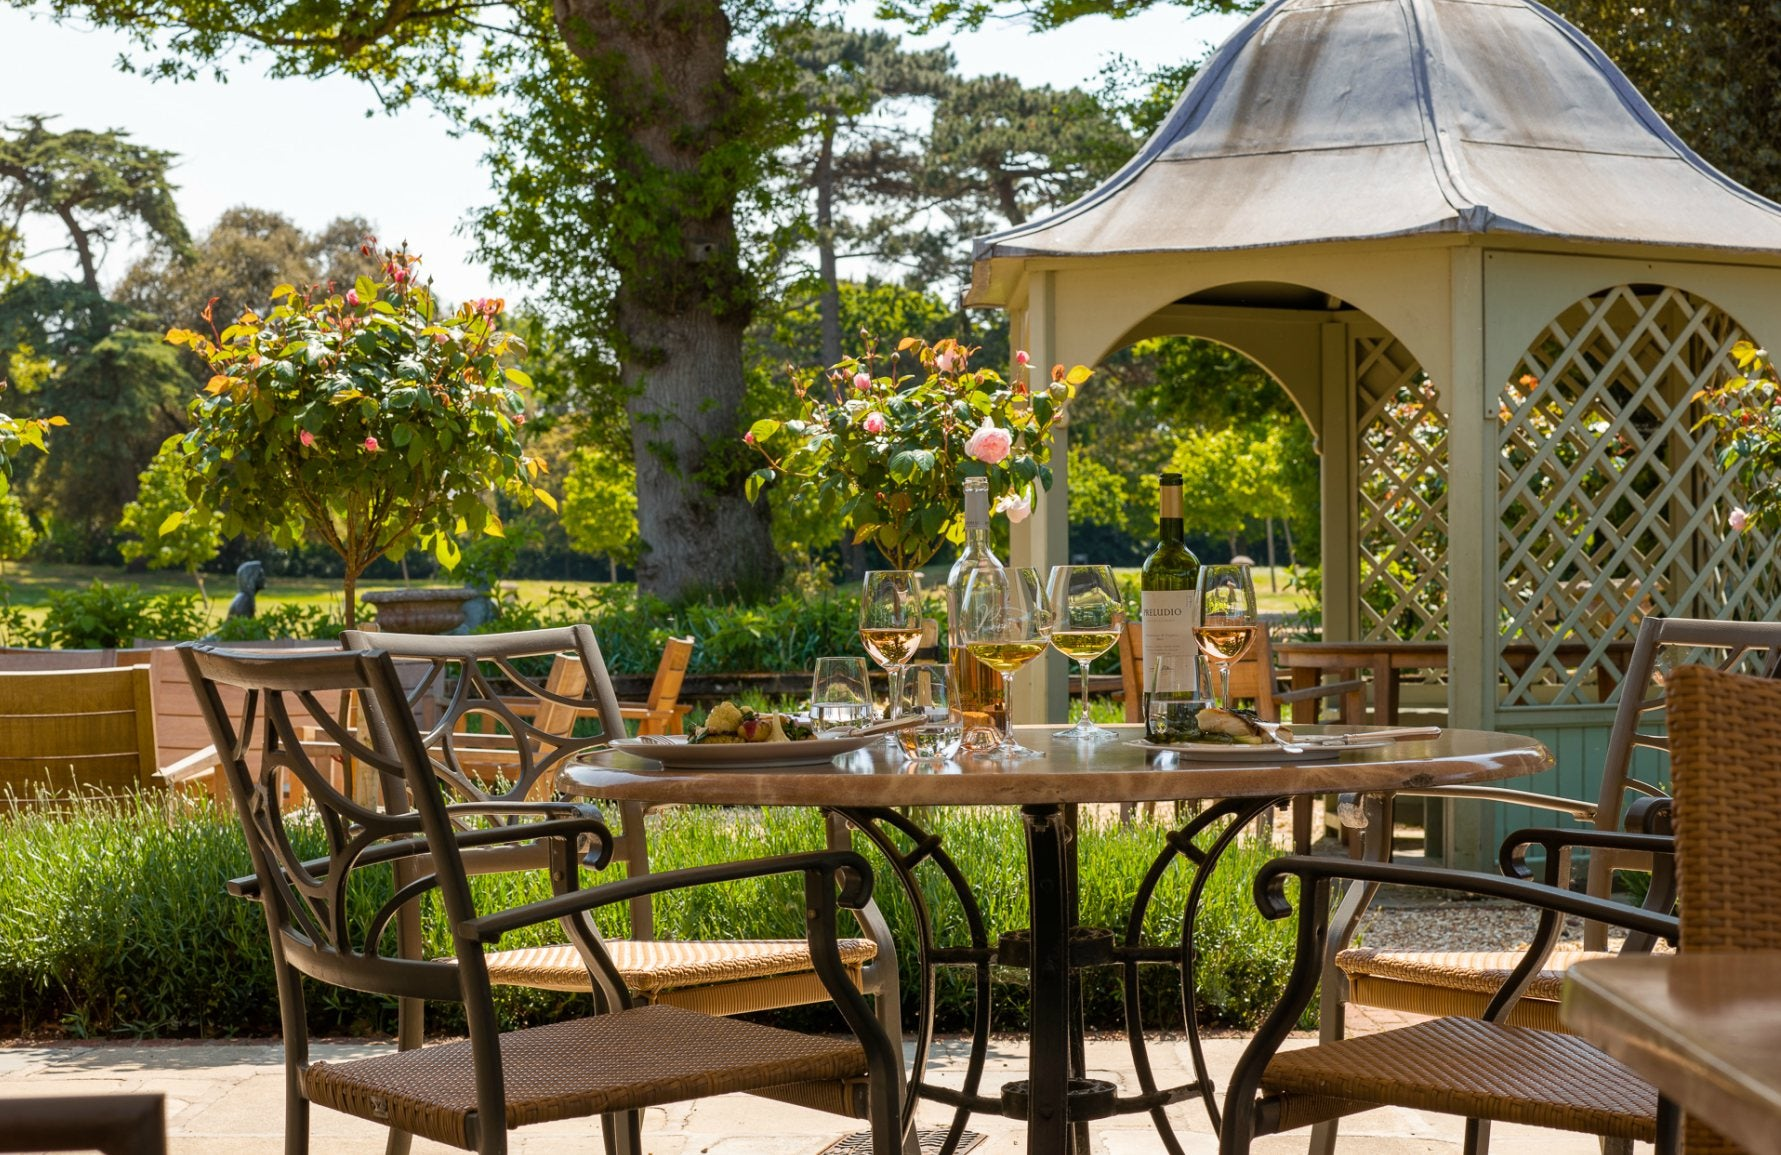 Top Country Hotels for the Bank Holiday Weekend | Chewton Glen hotel | LuxDeco.com